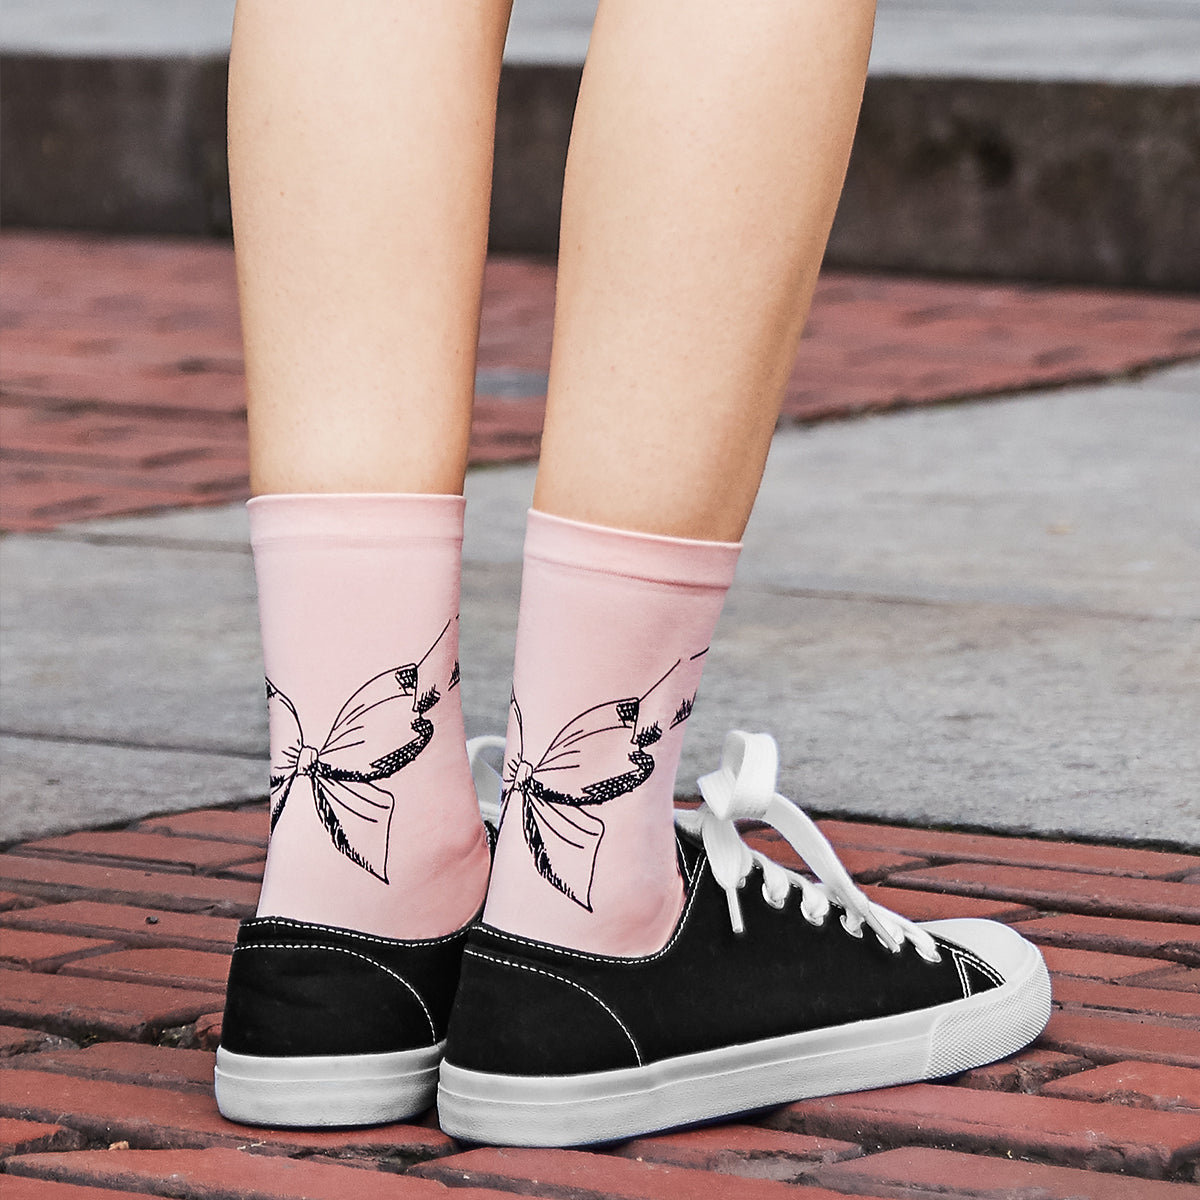 Shop Women's Fashion, Novelty, Low Cut and liner socks